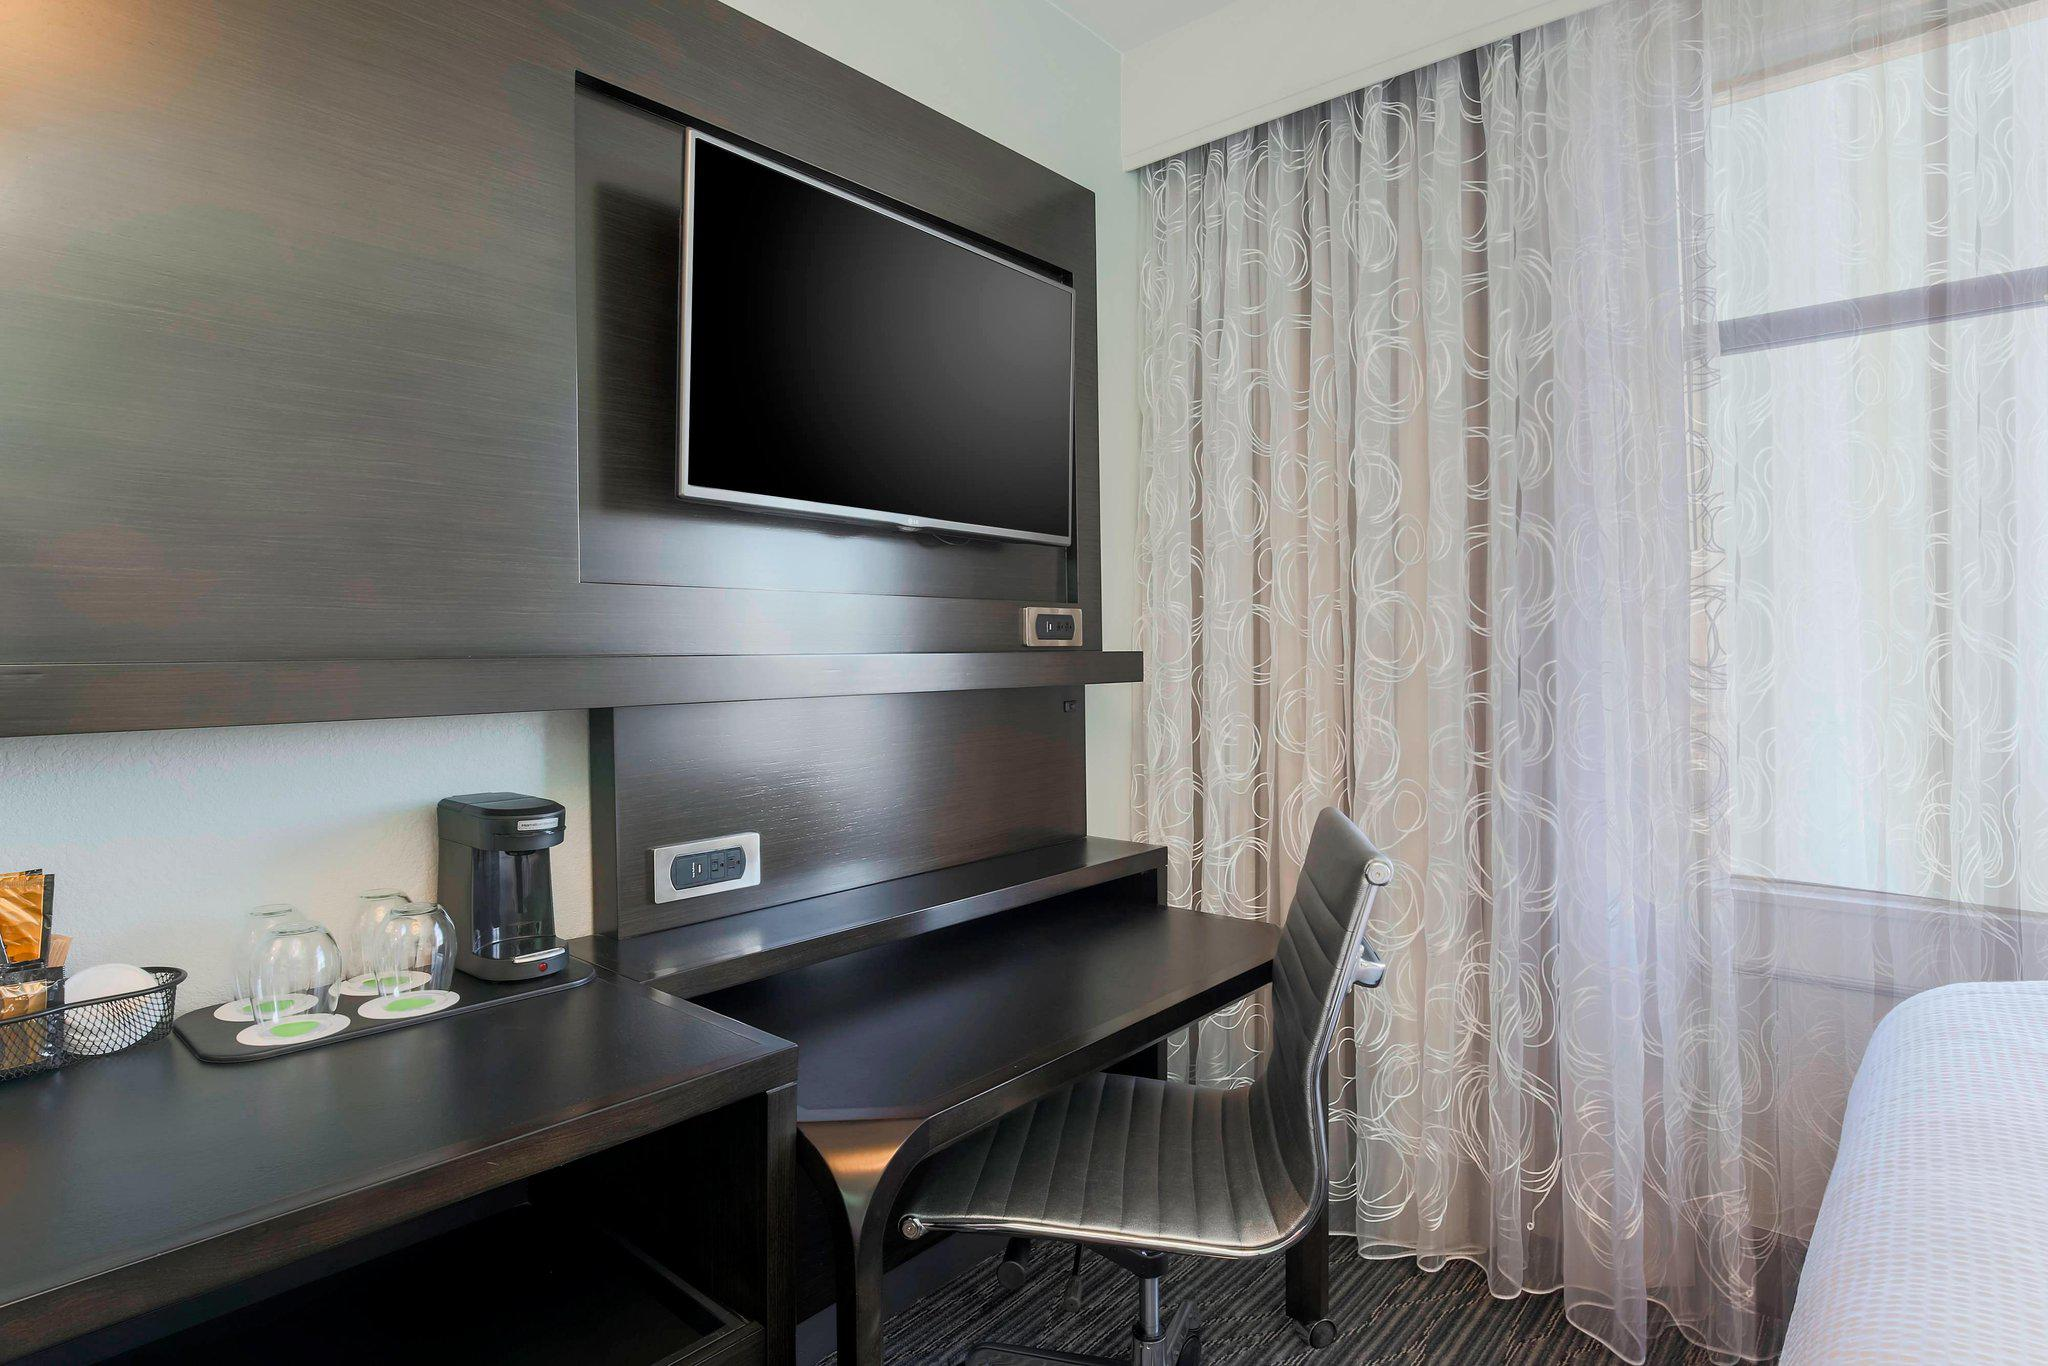 Courtyard by Marriott San Francisco Union Square